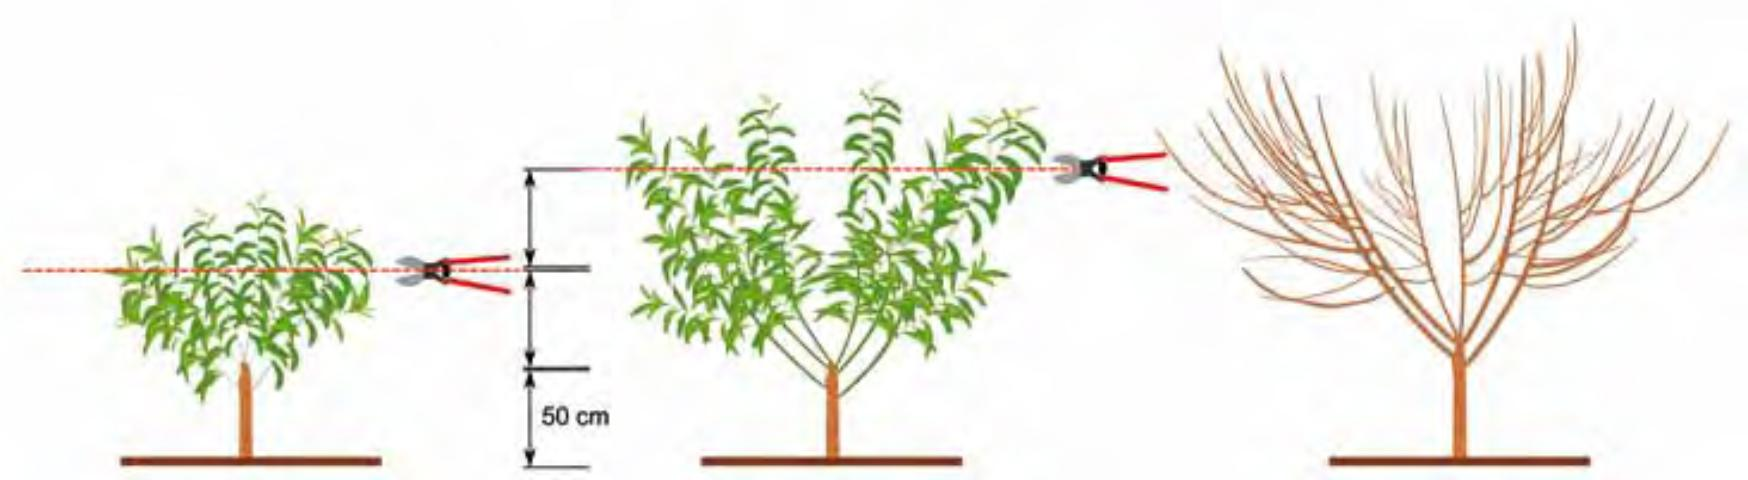 Figure 4. First manual topping is applied at about 40 inches (100 cm) above the soil. Center: Second manual topping is applied about 60 inches (150 cm) above the soil. Right: tree shape at the end of the first year.